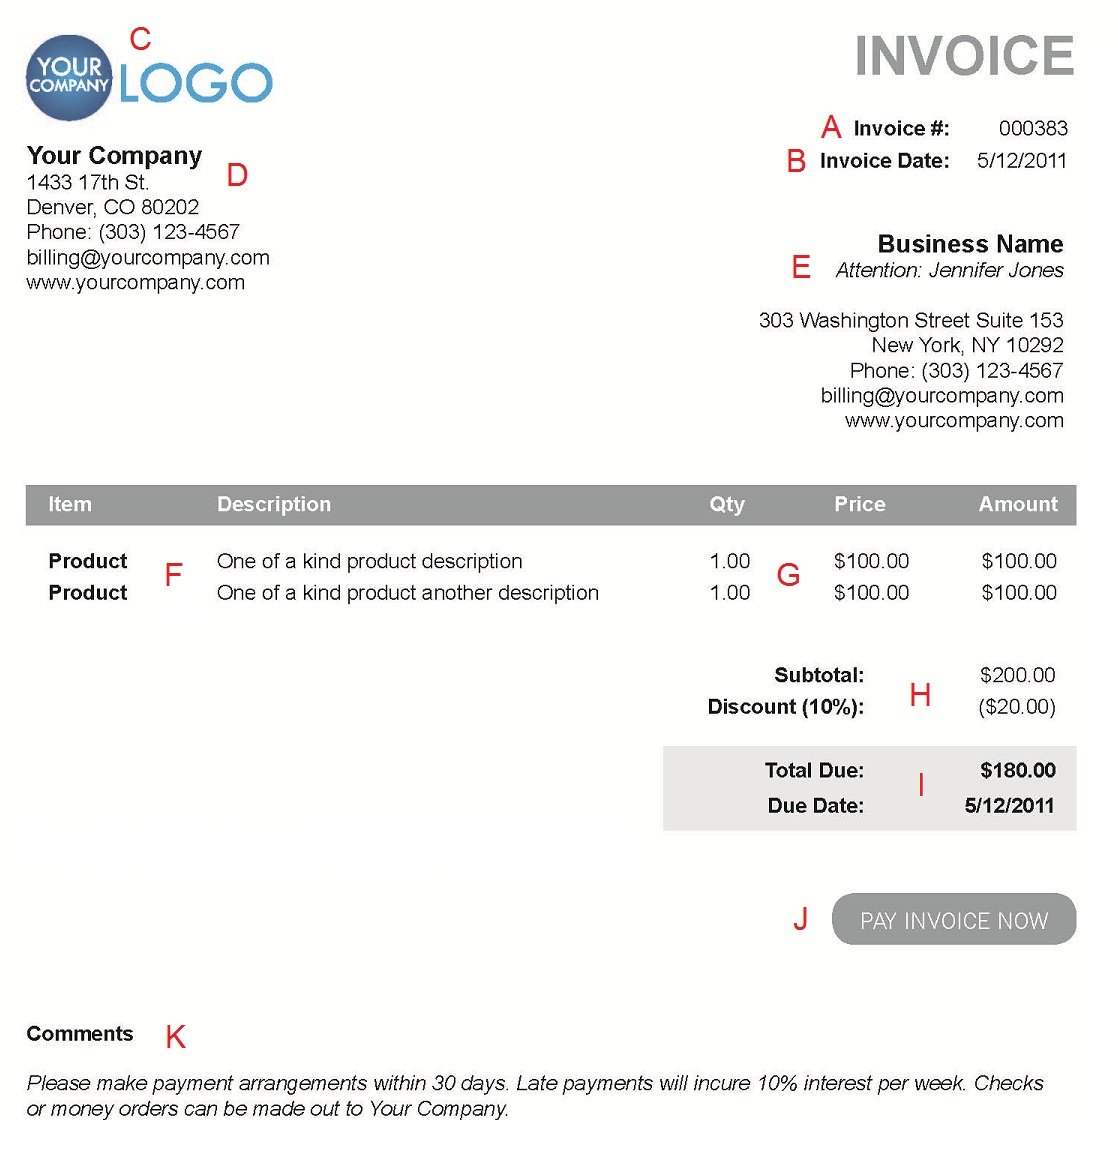 Coolmathgamesus  Mesmerizing The  Different Sections Of An Electronic Payment Invoice With Lovable A  With Astounding Invoice Terminology Also Dhl Invoice Form In Addition Repair Shop Invoice And Audi Q Invoice Price As Well As Example Of Invoice Letter Additionally Digital Invoices From Paysimplecom With Coolmathgamesus  Lovable The  Different Sections Of An Electronic Payment Invoice With Astounding A  And Mesmerizing Invoice Terminology Also Dhl Invoice Form In Addition Repair Shop Invoice From Paysimplecom